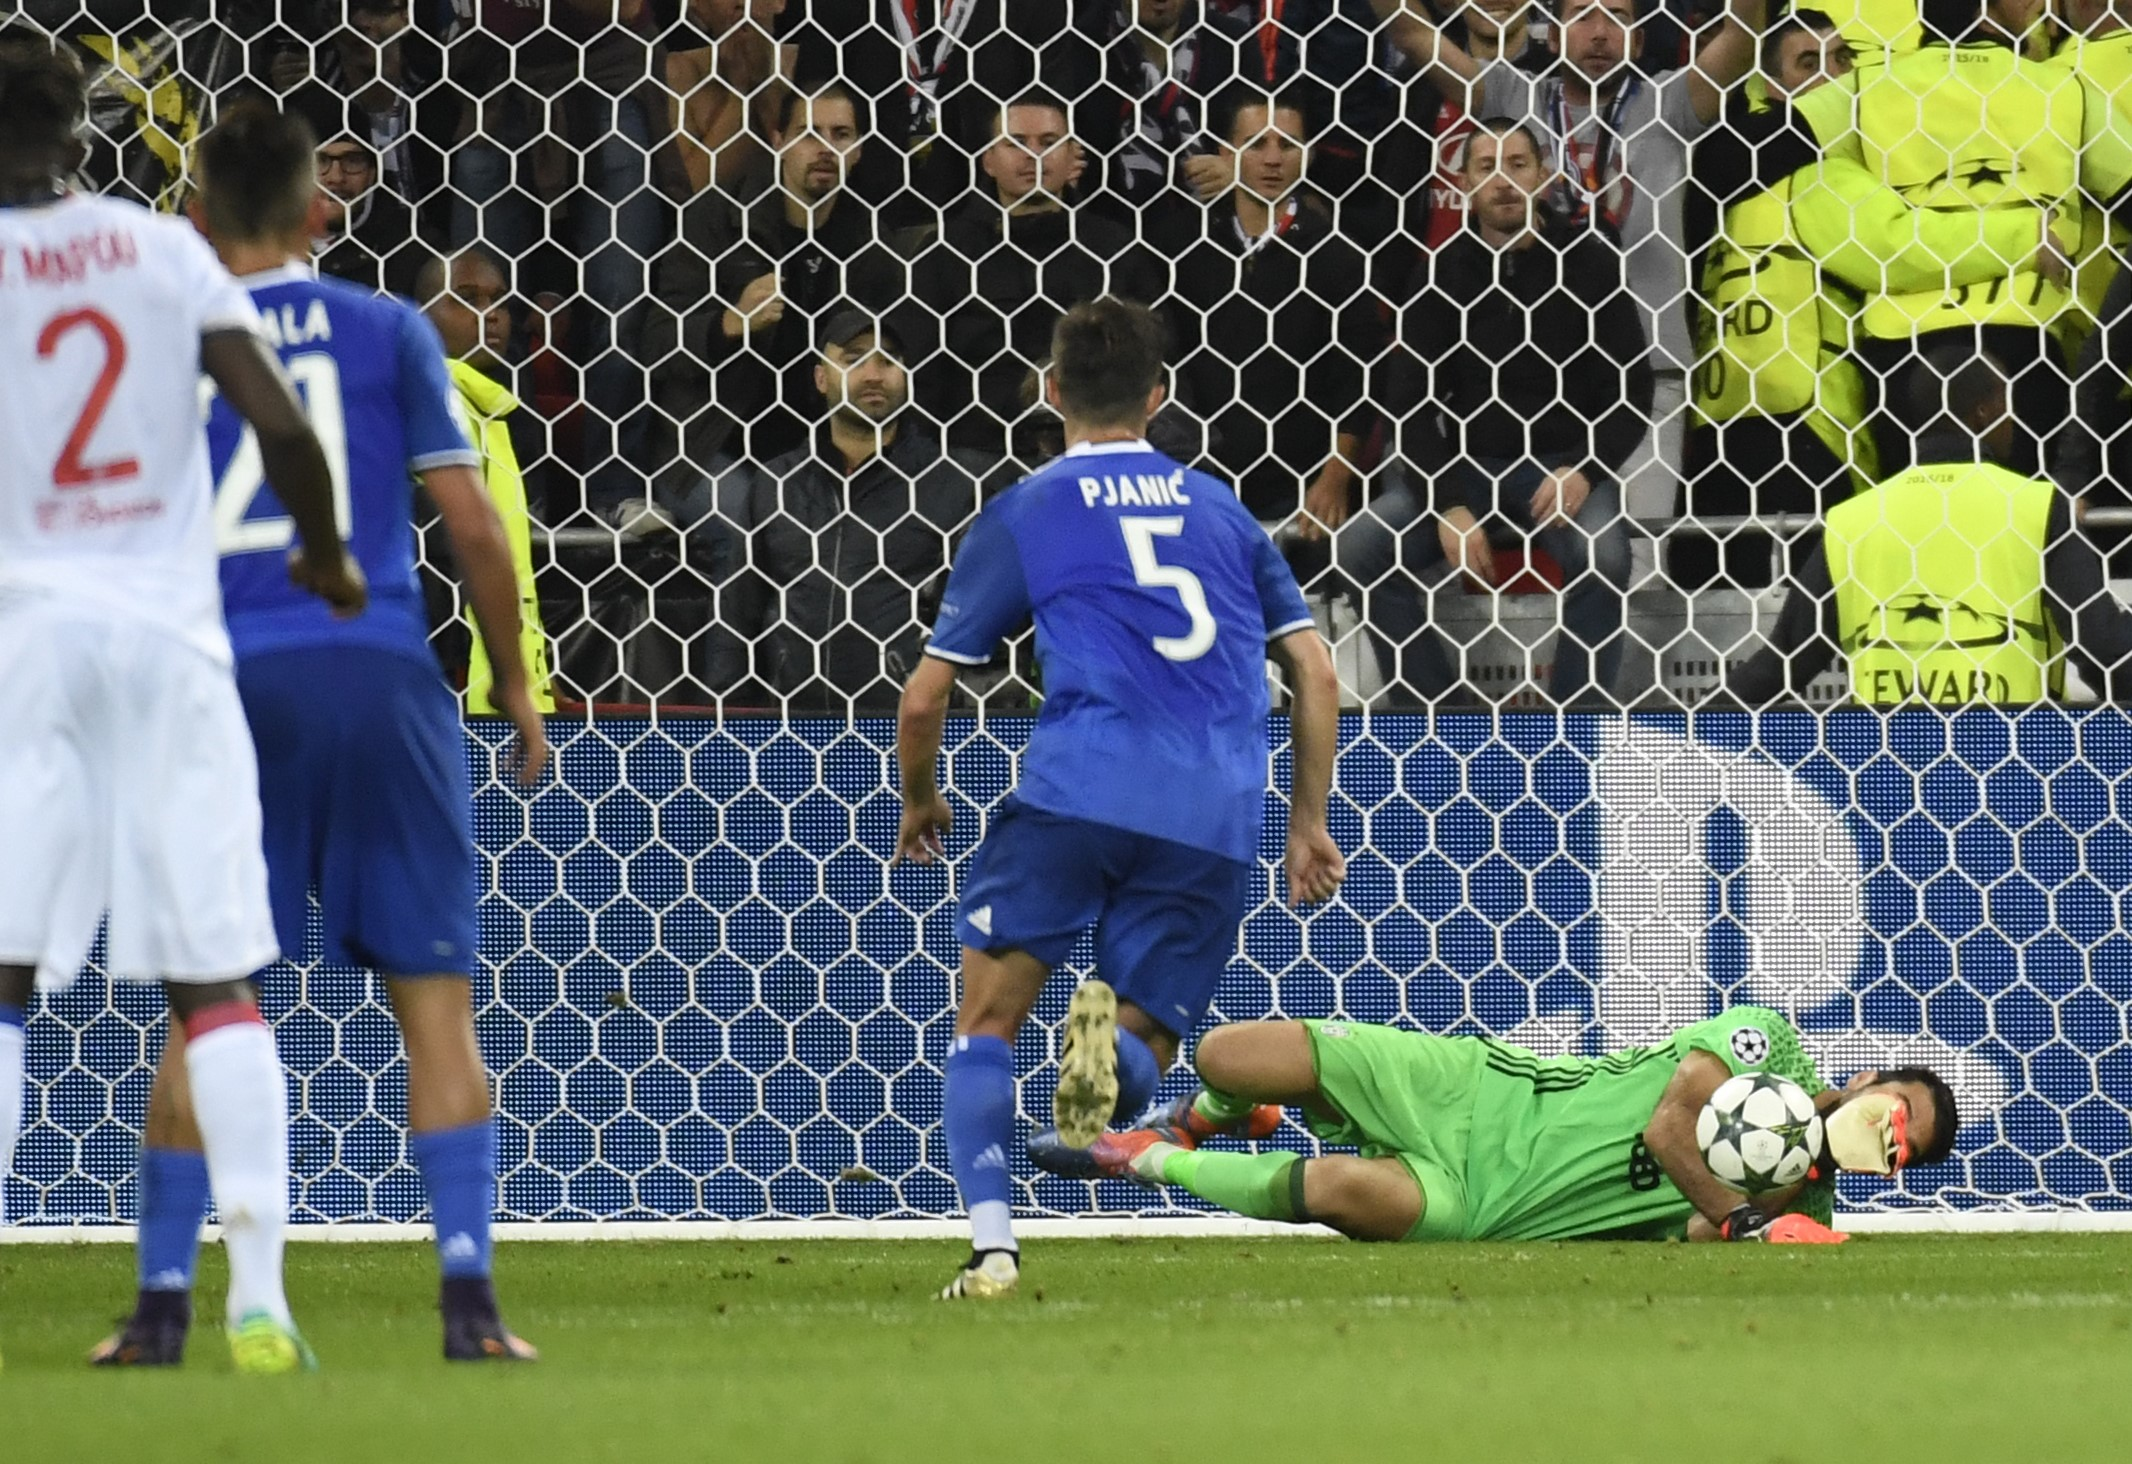 Gigi Buffon saves from Lacazette